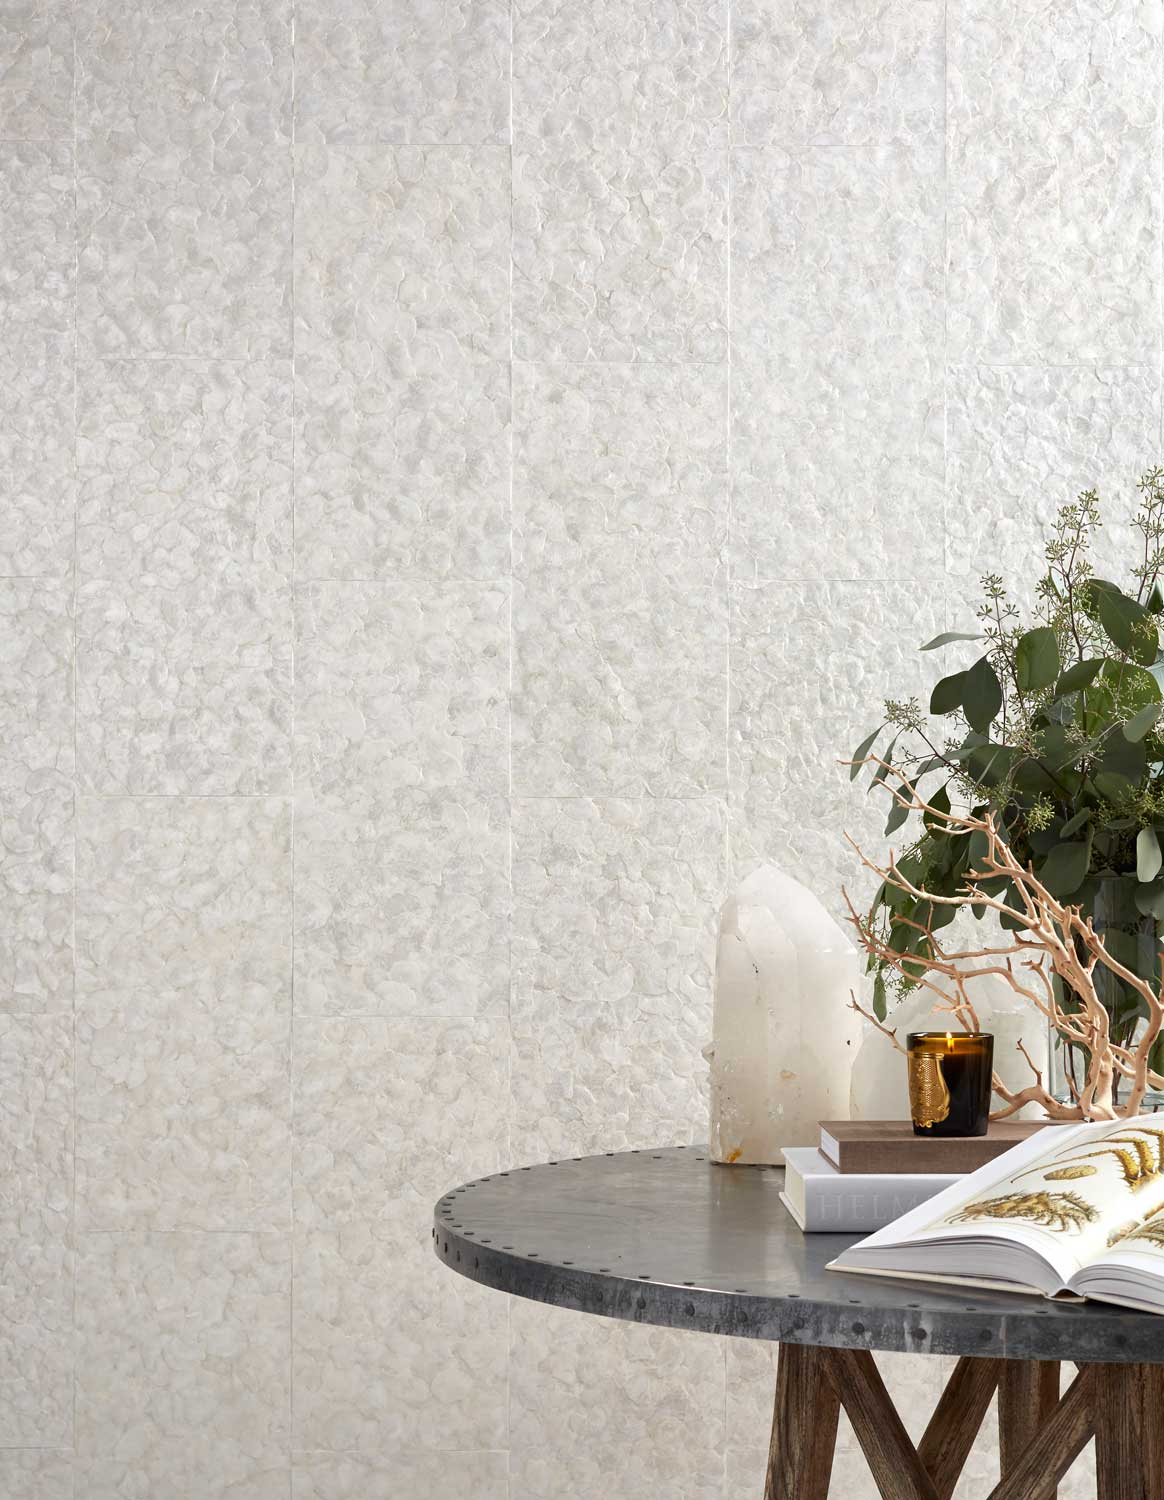 round table with plans and a white wallpaper on the wall